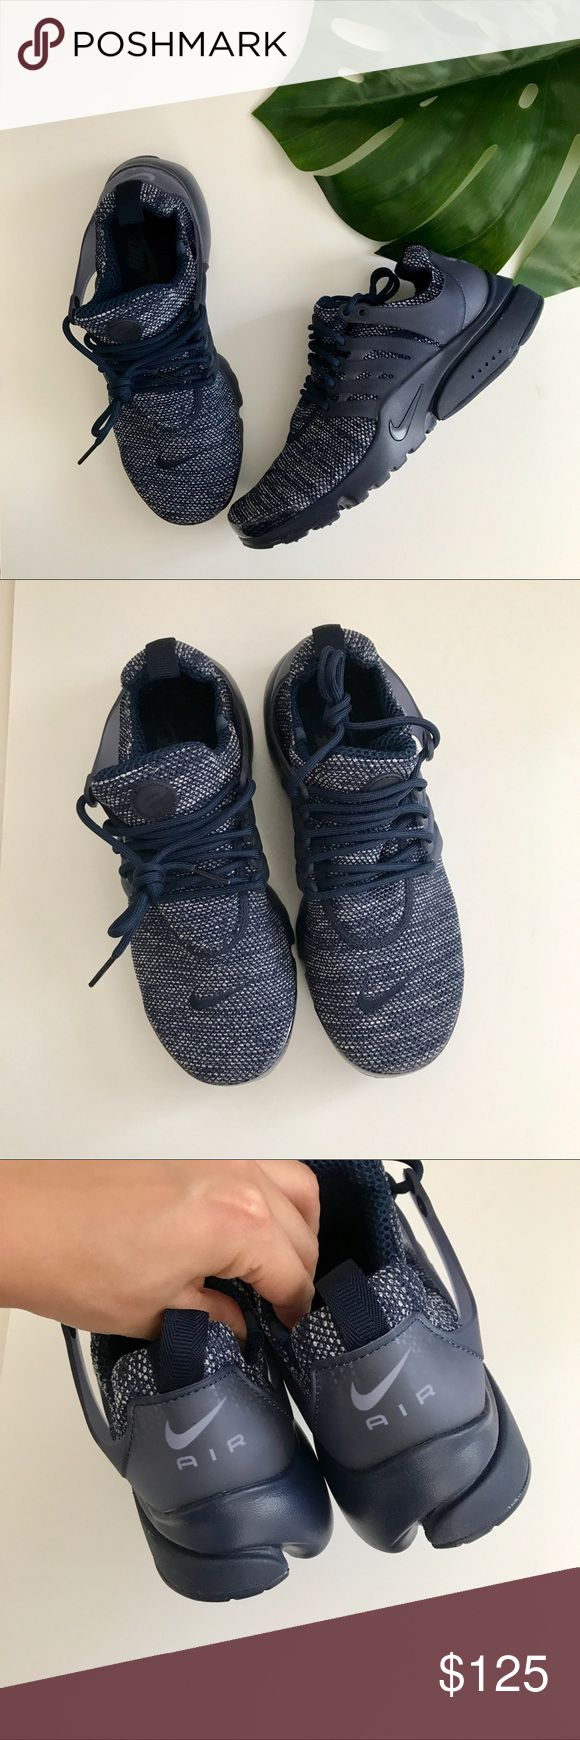 Nike Air Presto Ultra Br Brand new with the box but no lid. Men's size 7 which is women's size 8.5. Color is Midnight Navy Nike Shoes Athletic Shoes